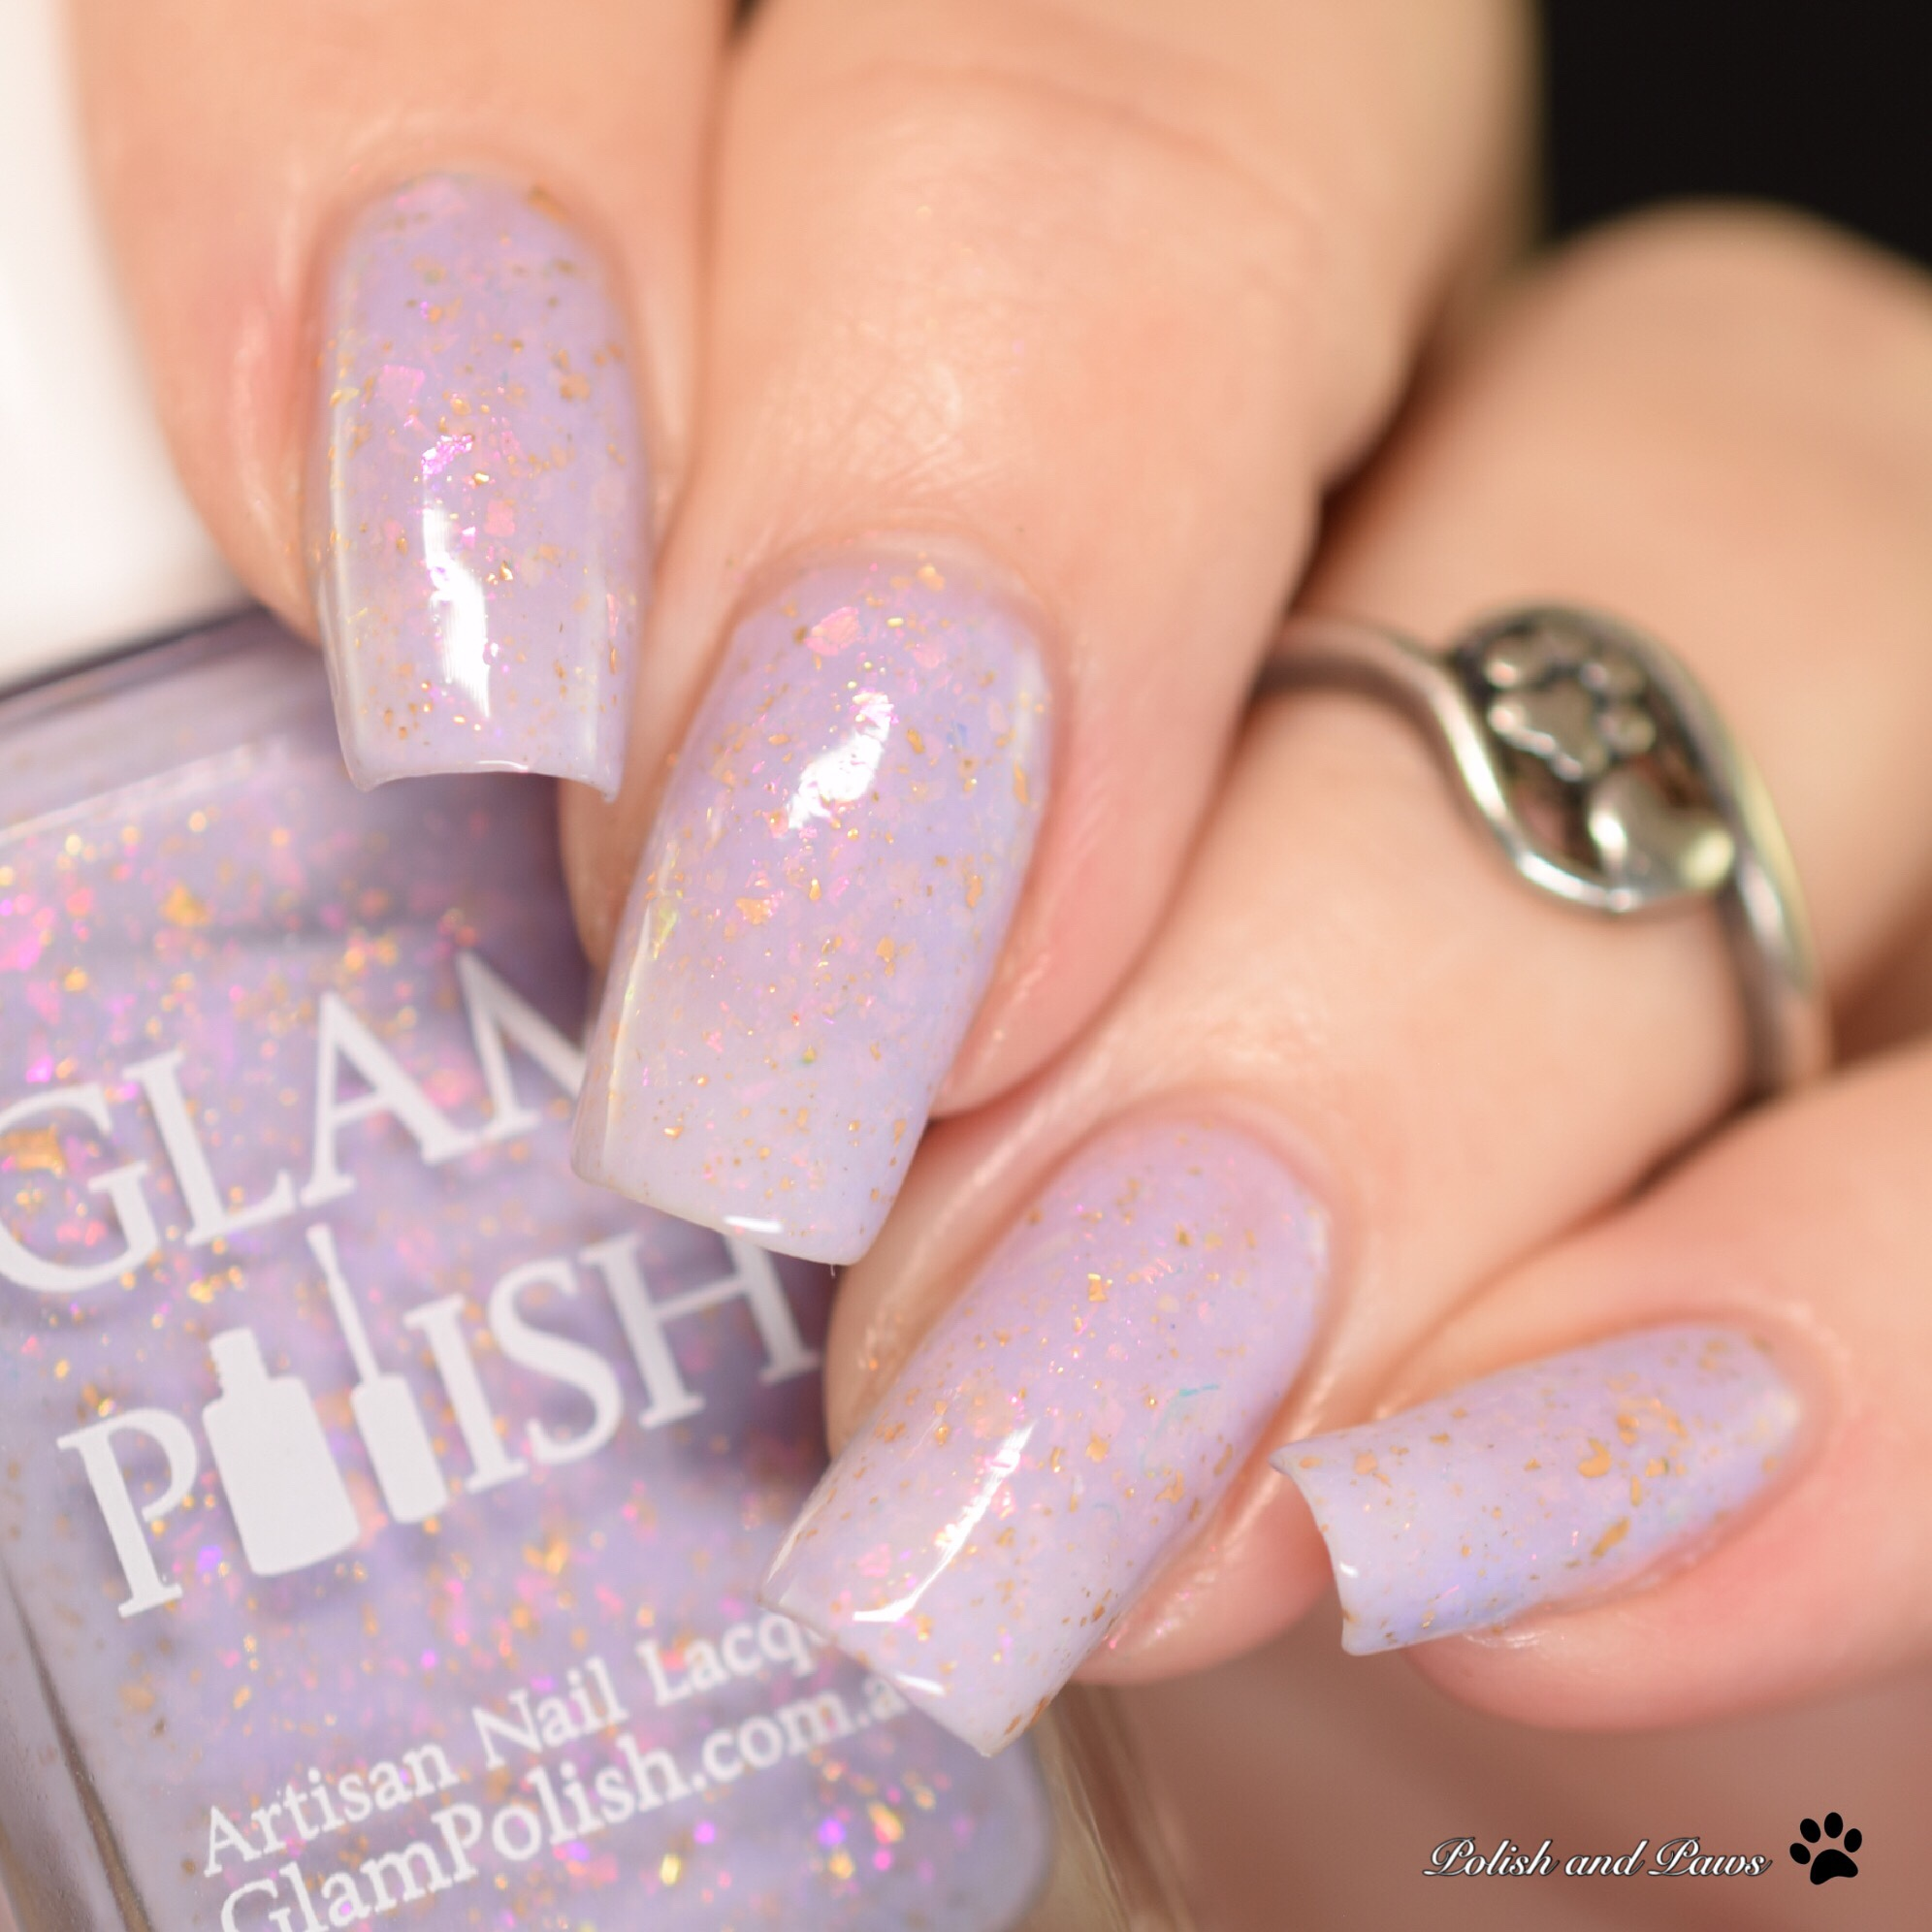 Glam Polish This Madame, is Versailles